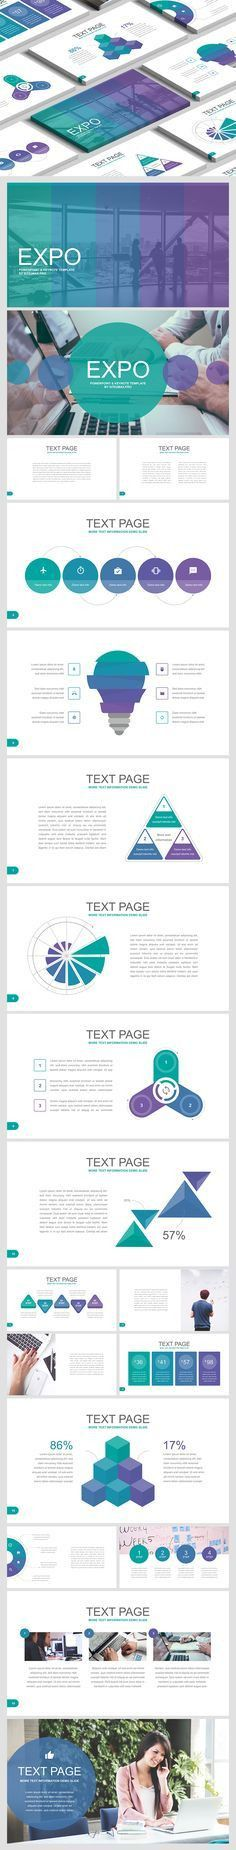 Free Download #Conference #PowerPoint & #Keynote #Template https ...